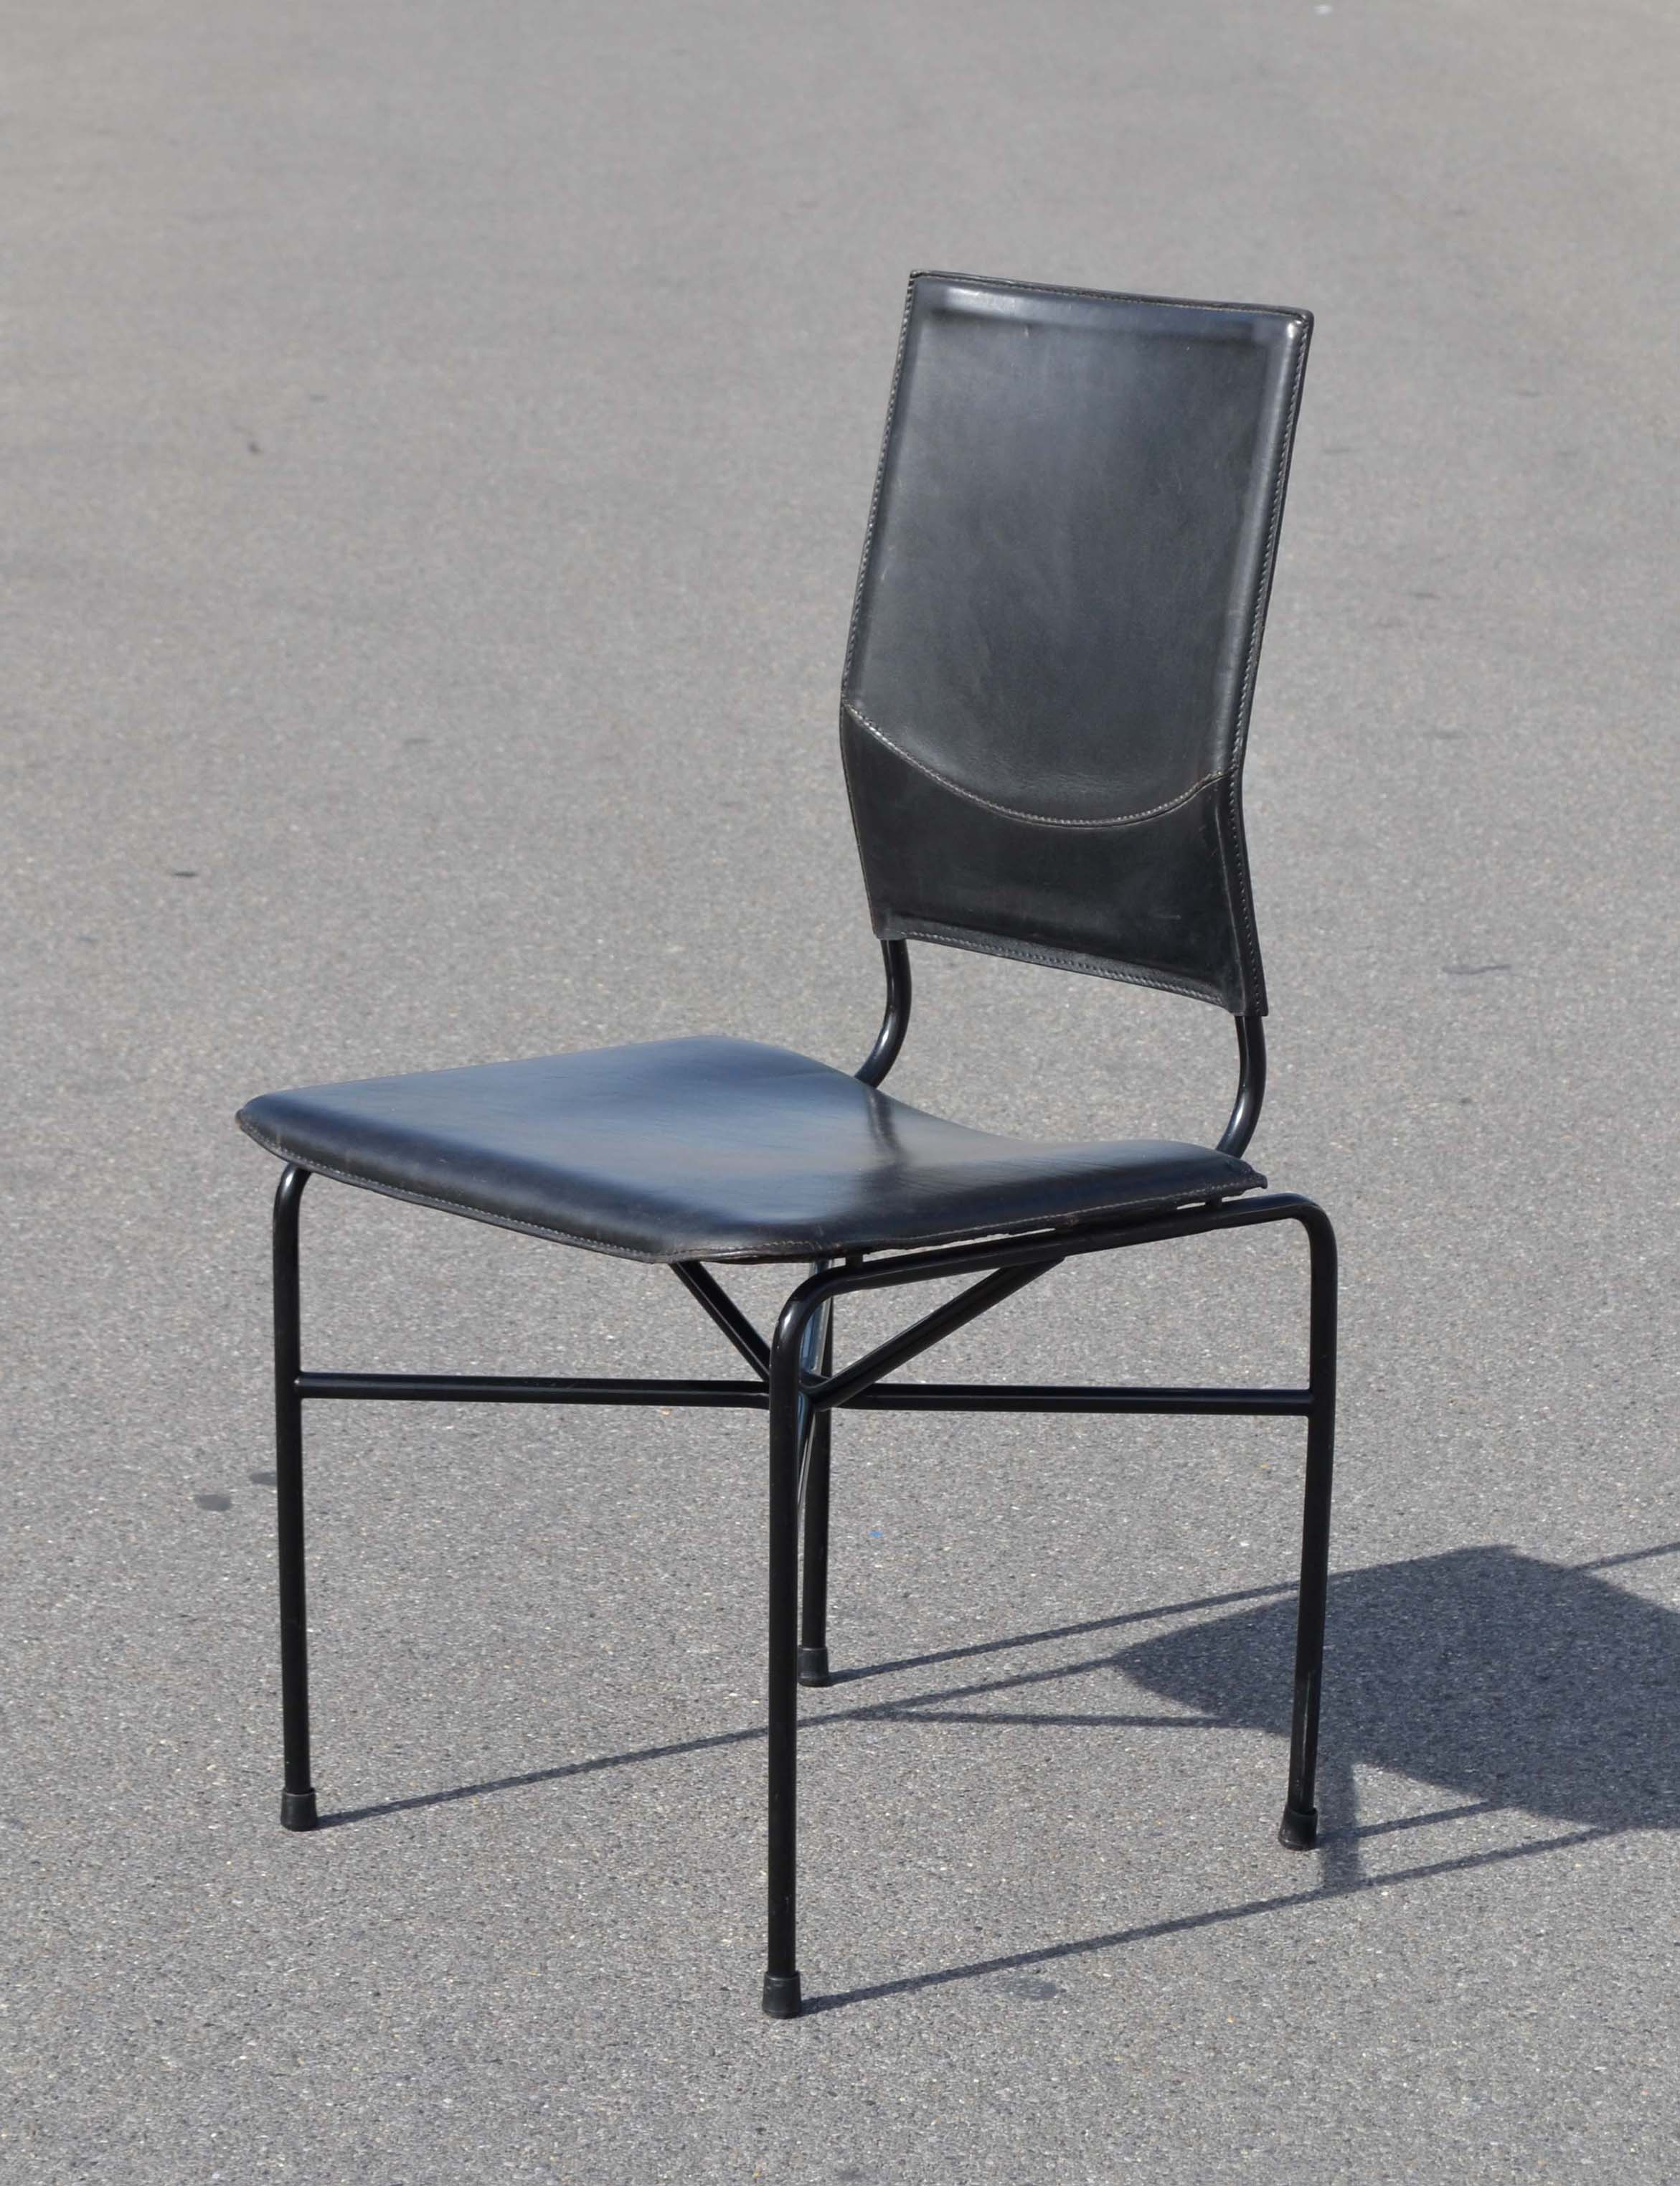 Objets et mobilier design vintage 80s for Chaise italienne design